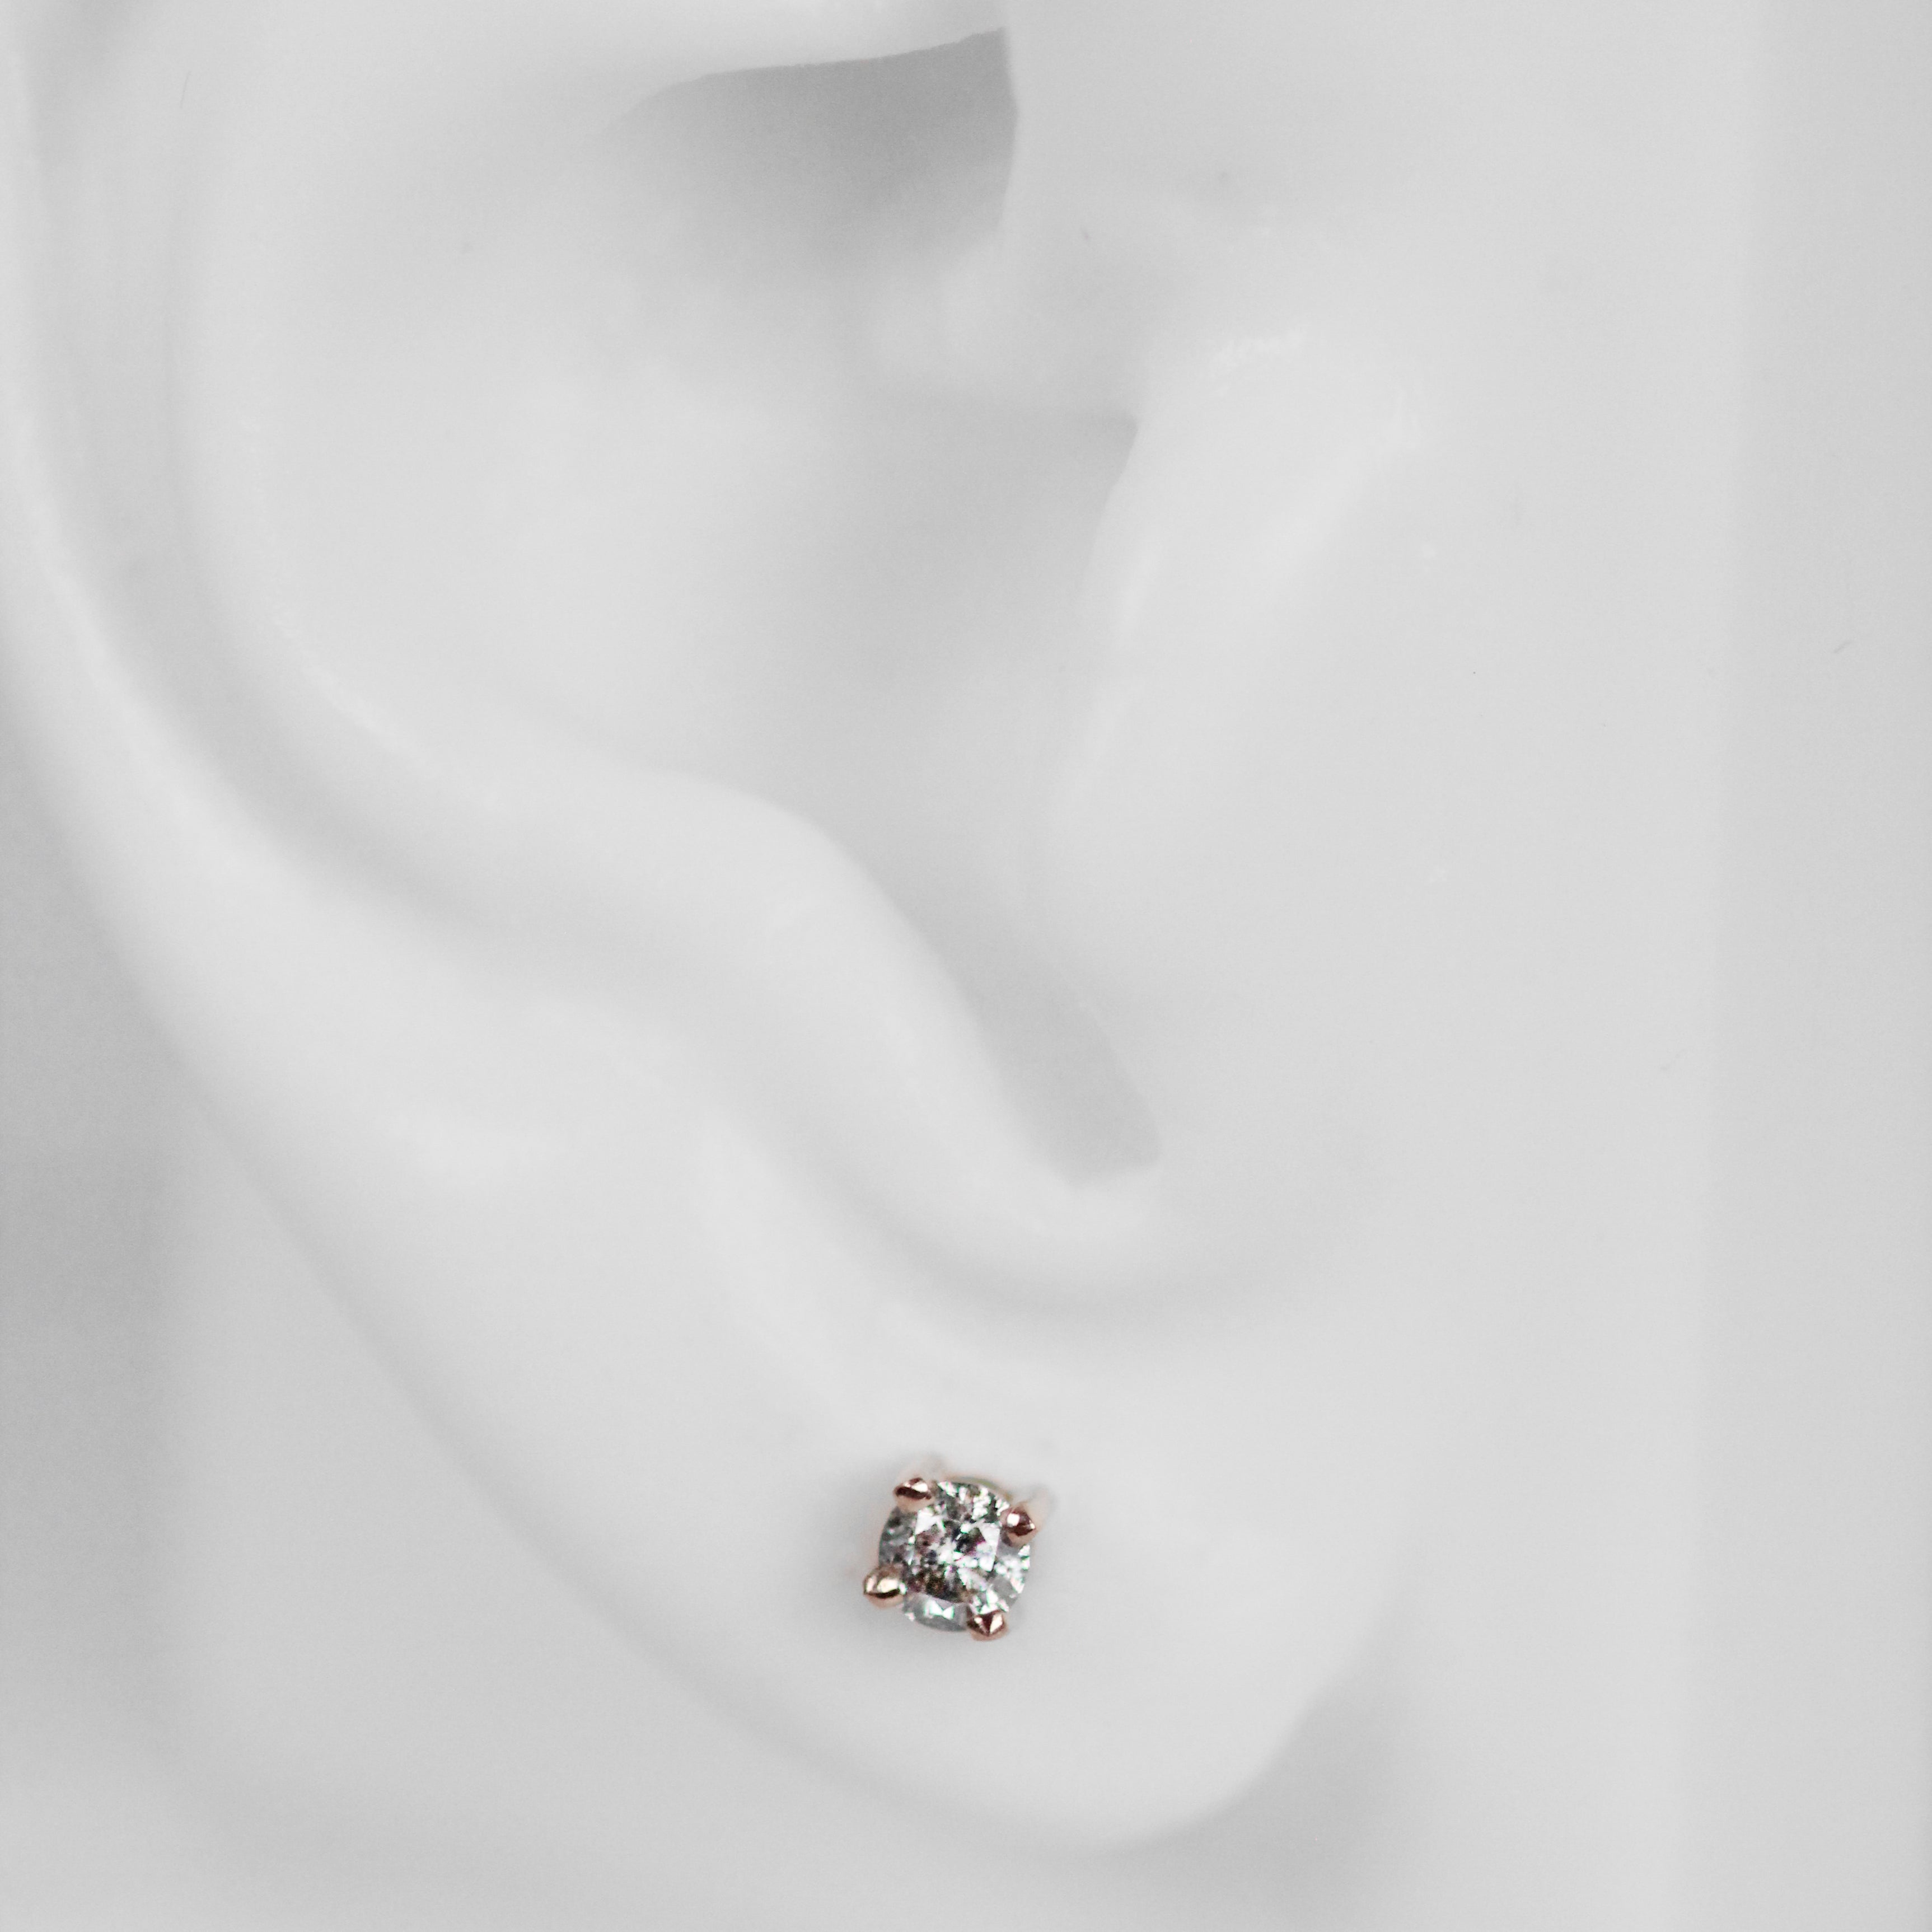 14k Gold Earring Studs with Gray Celestial Diamonds- Ready to Ship - Celestial Diamonds ® by Midwinter Co.